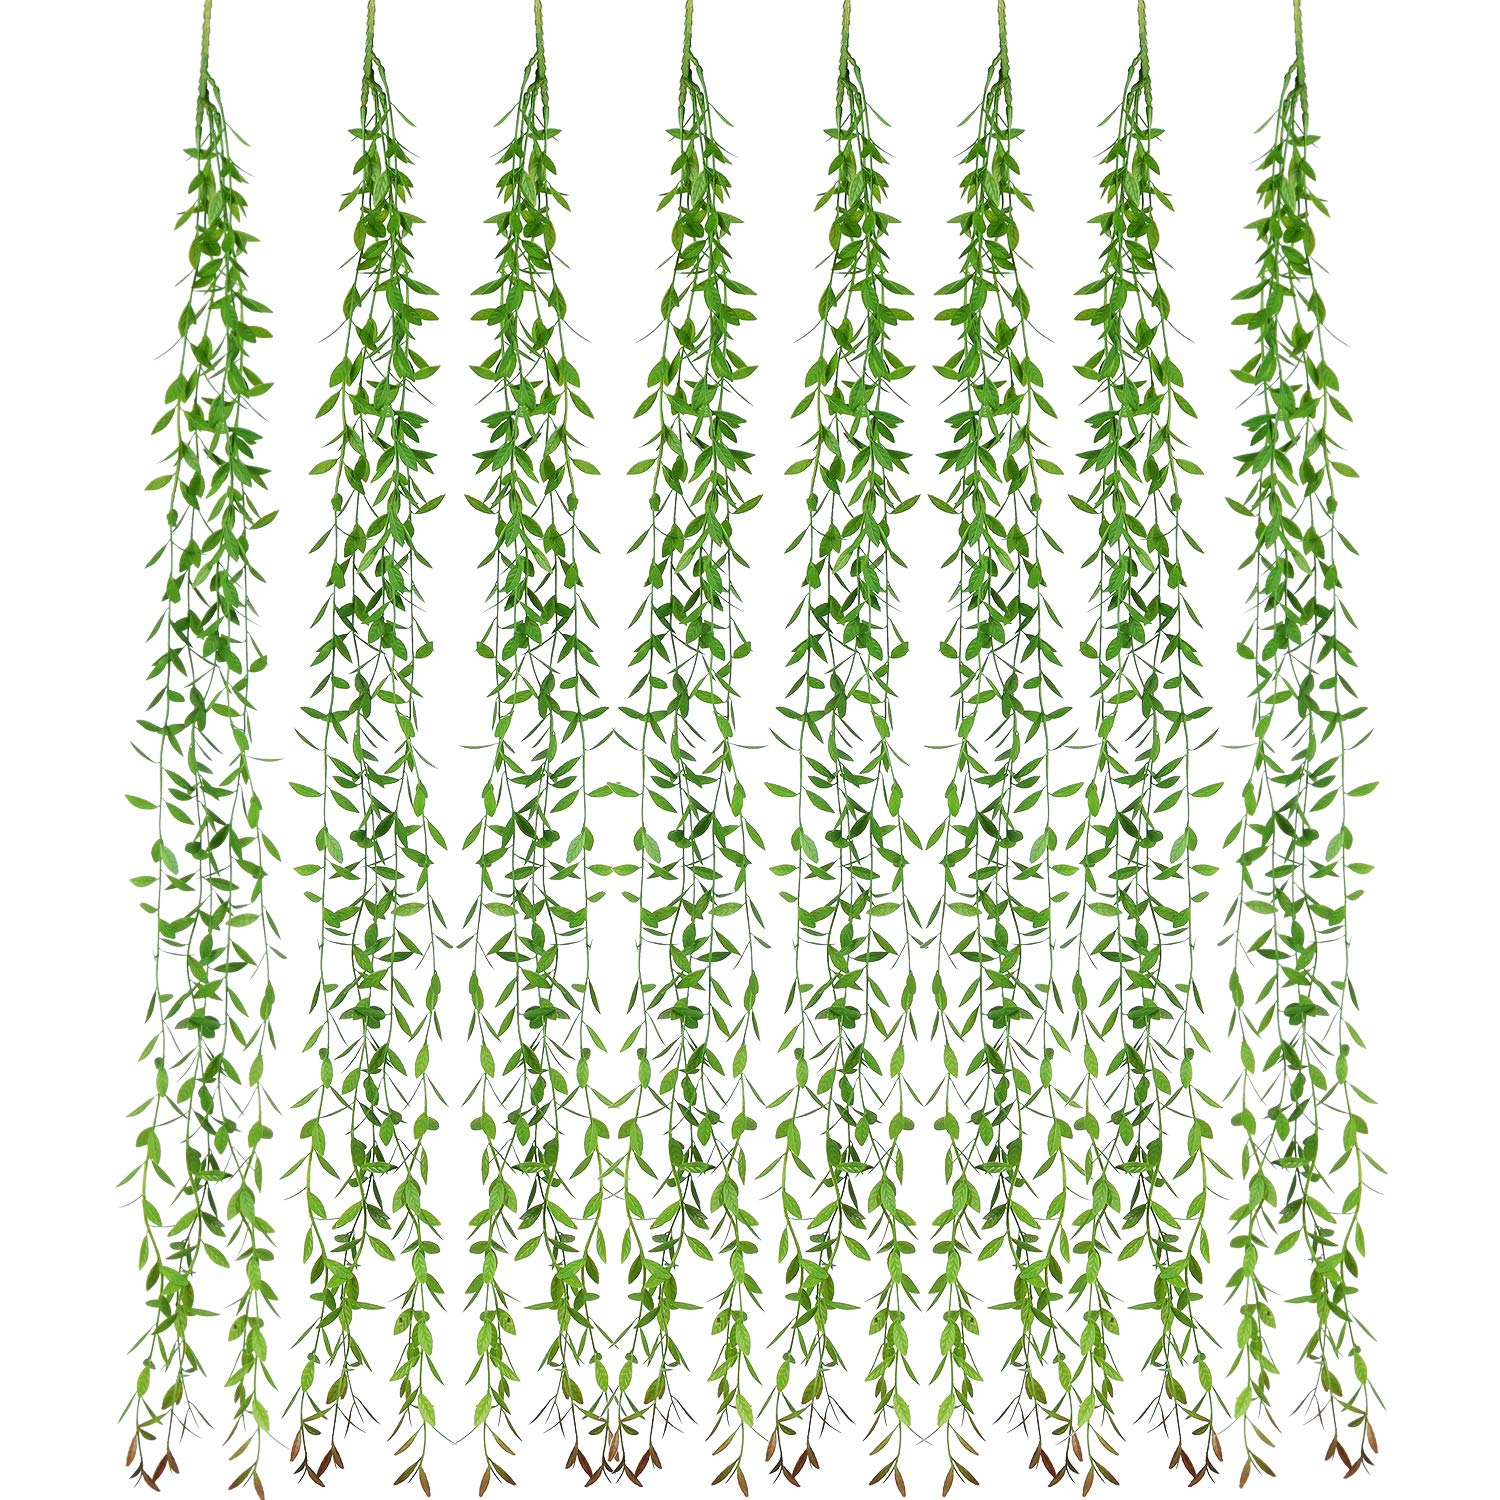 Artiflr-Artificial-Vines-Fake-Greenery-Garland-6-Pcs-Willow-Leaves-with-Total-30-Stems-Hanging-for-Wedding-Party-Garden-Wall-Home-Decoration